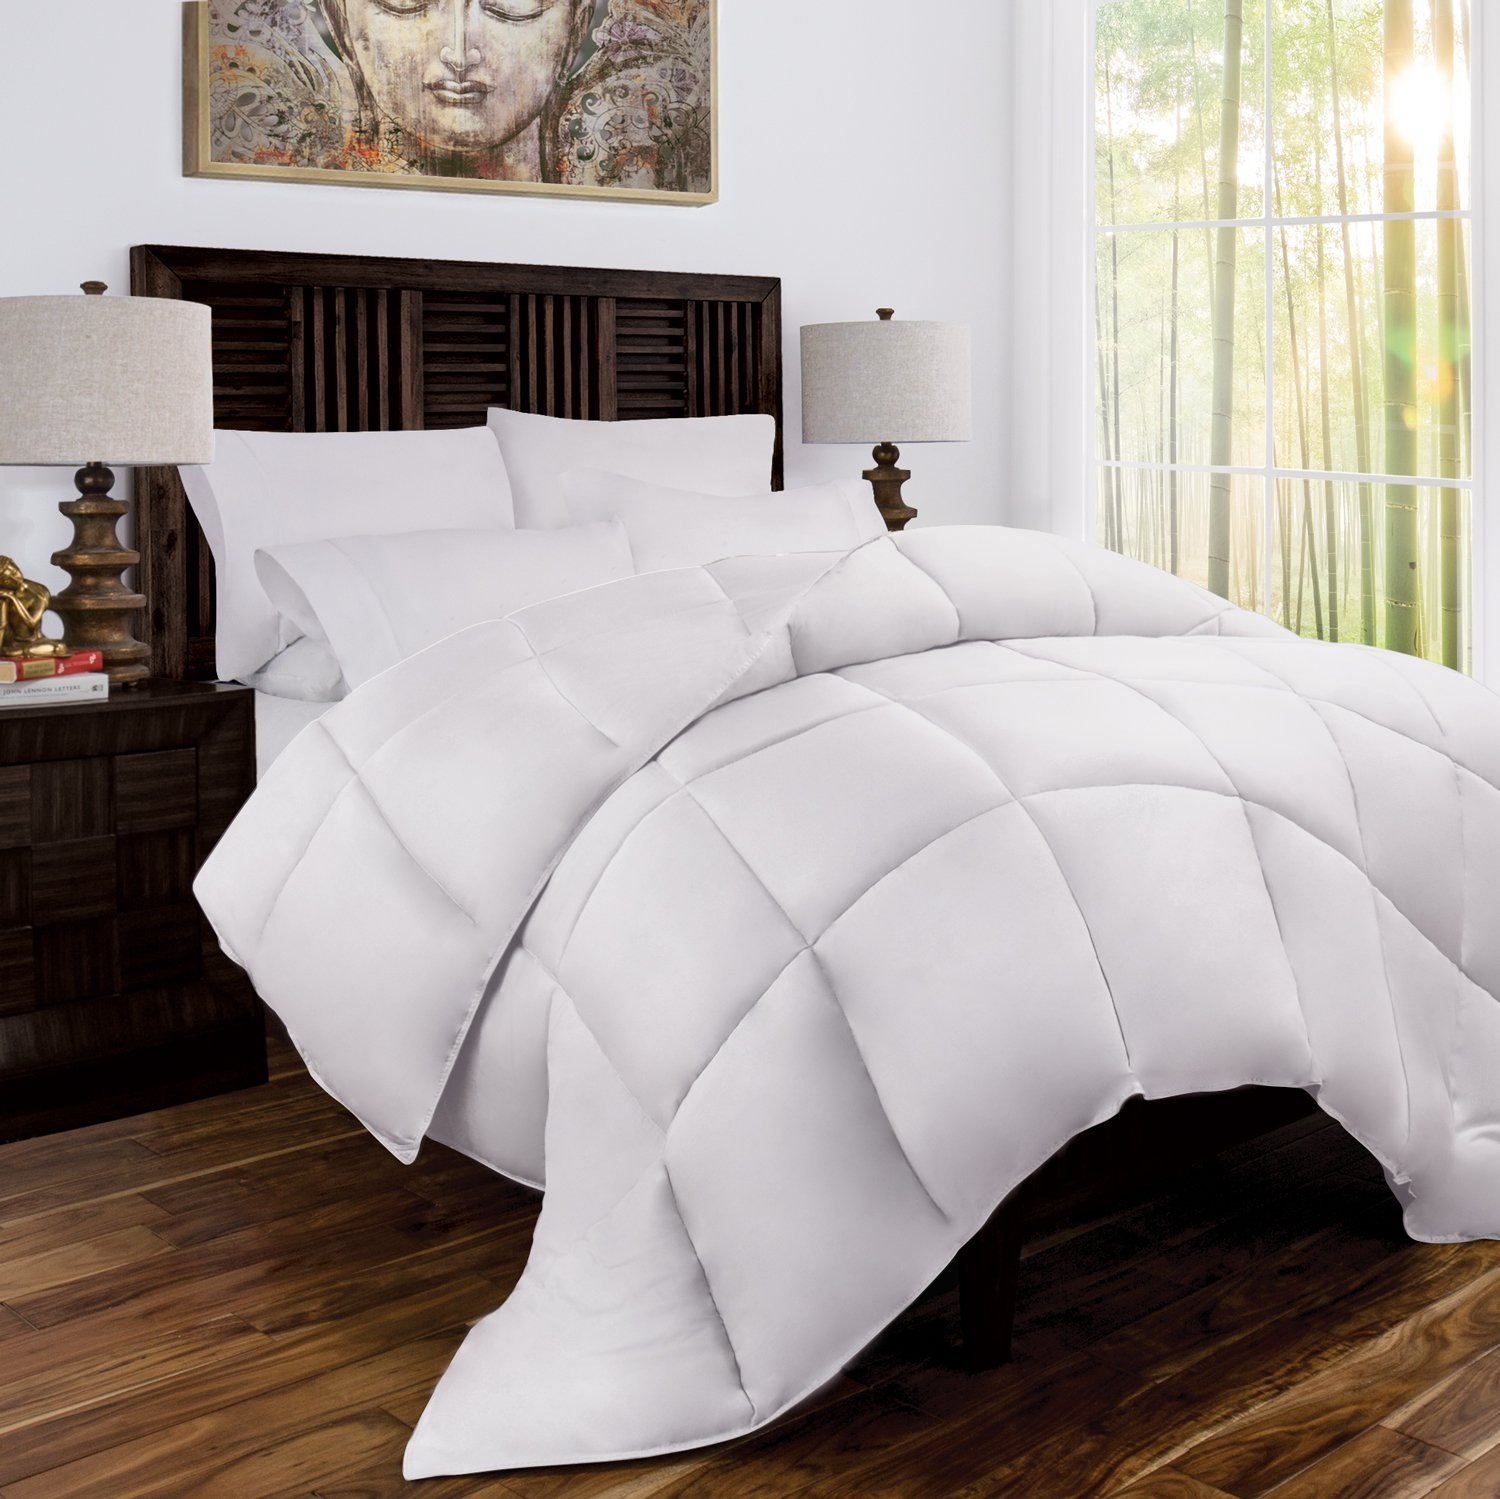 Zen Bamboo Luxury Goose Down Alternative Comforter - All Season Hotel Quality Hypoallergenic Duvet Insert with Cooling Bamboo Blend Fabric - King/Cal King - White